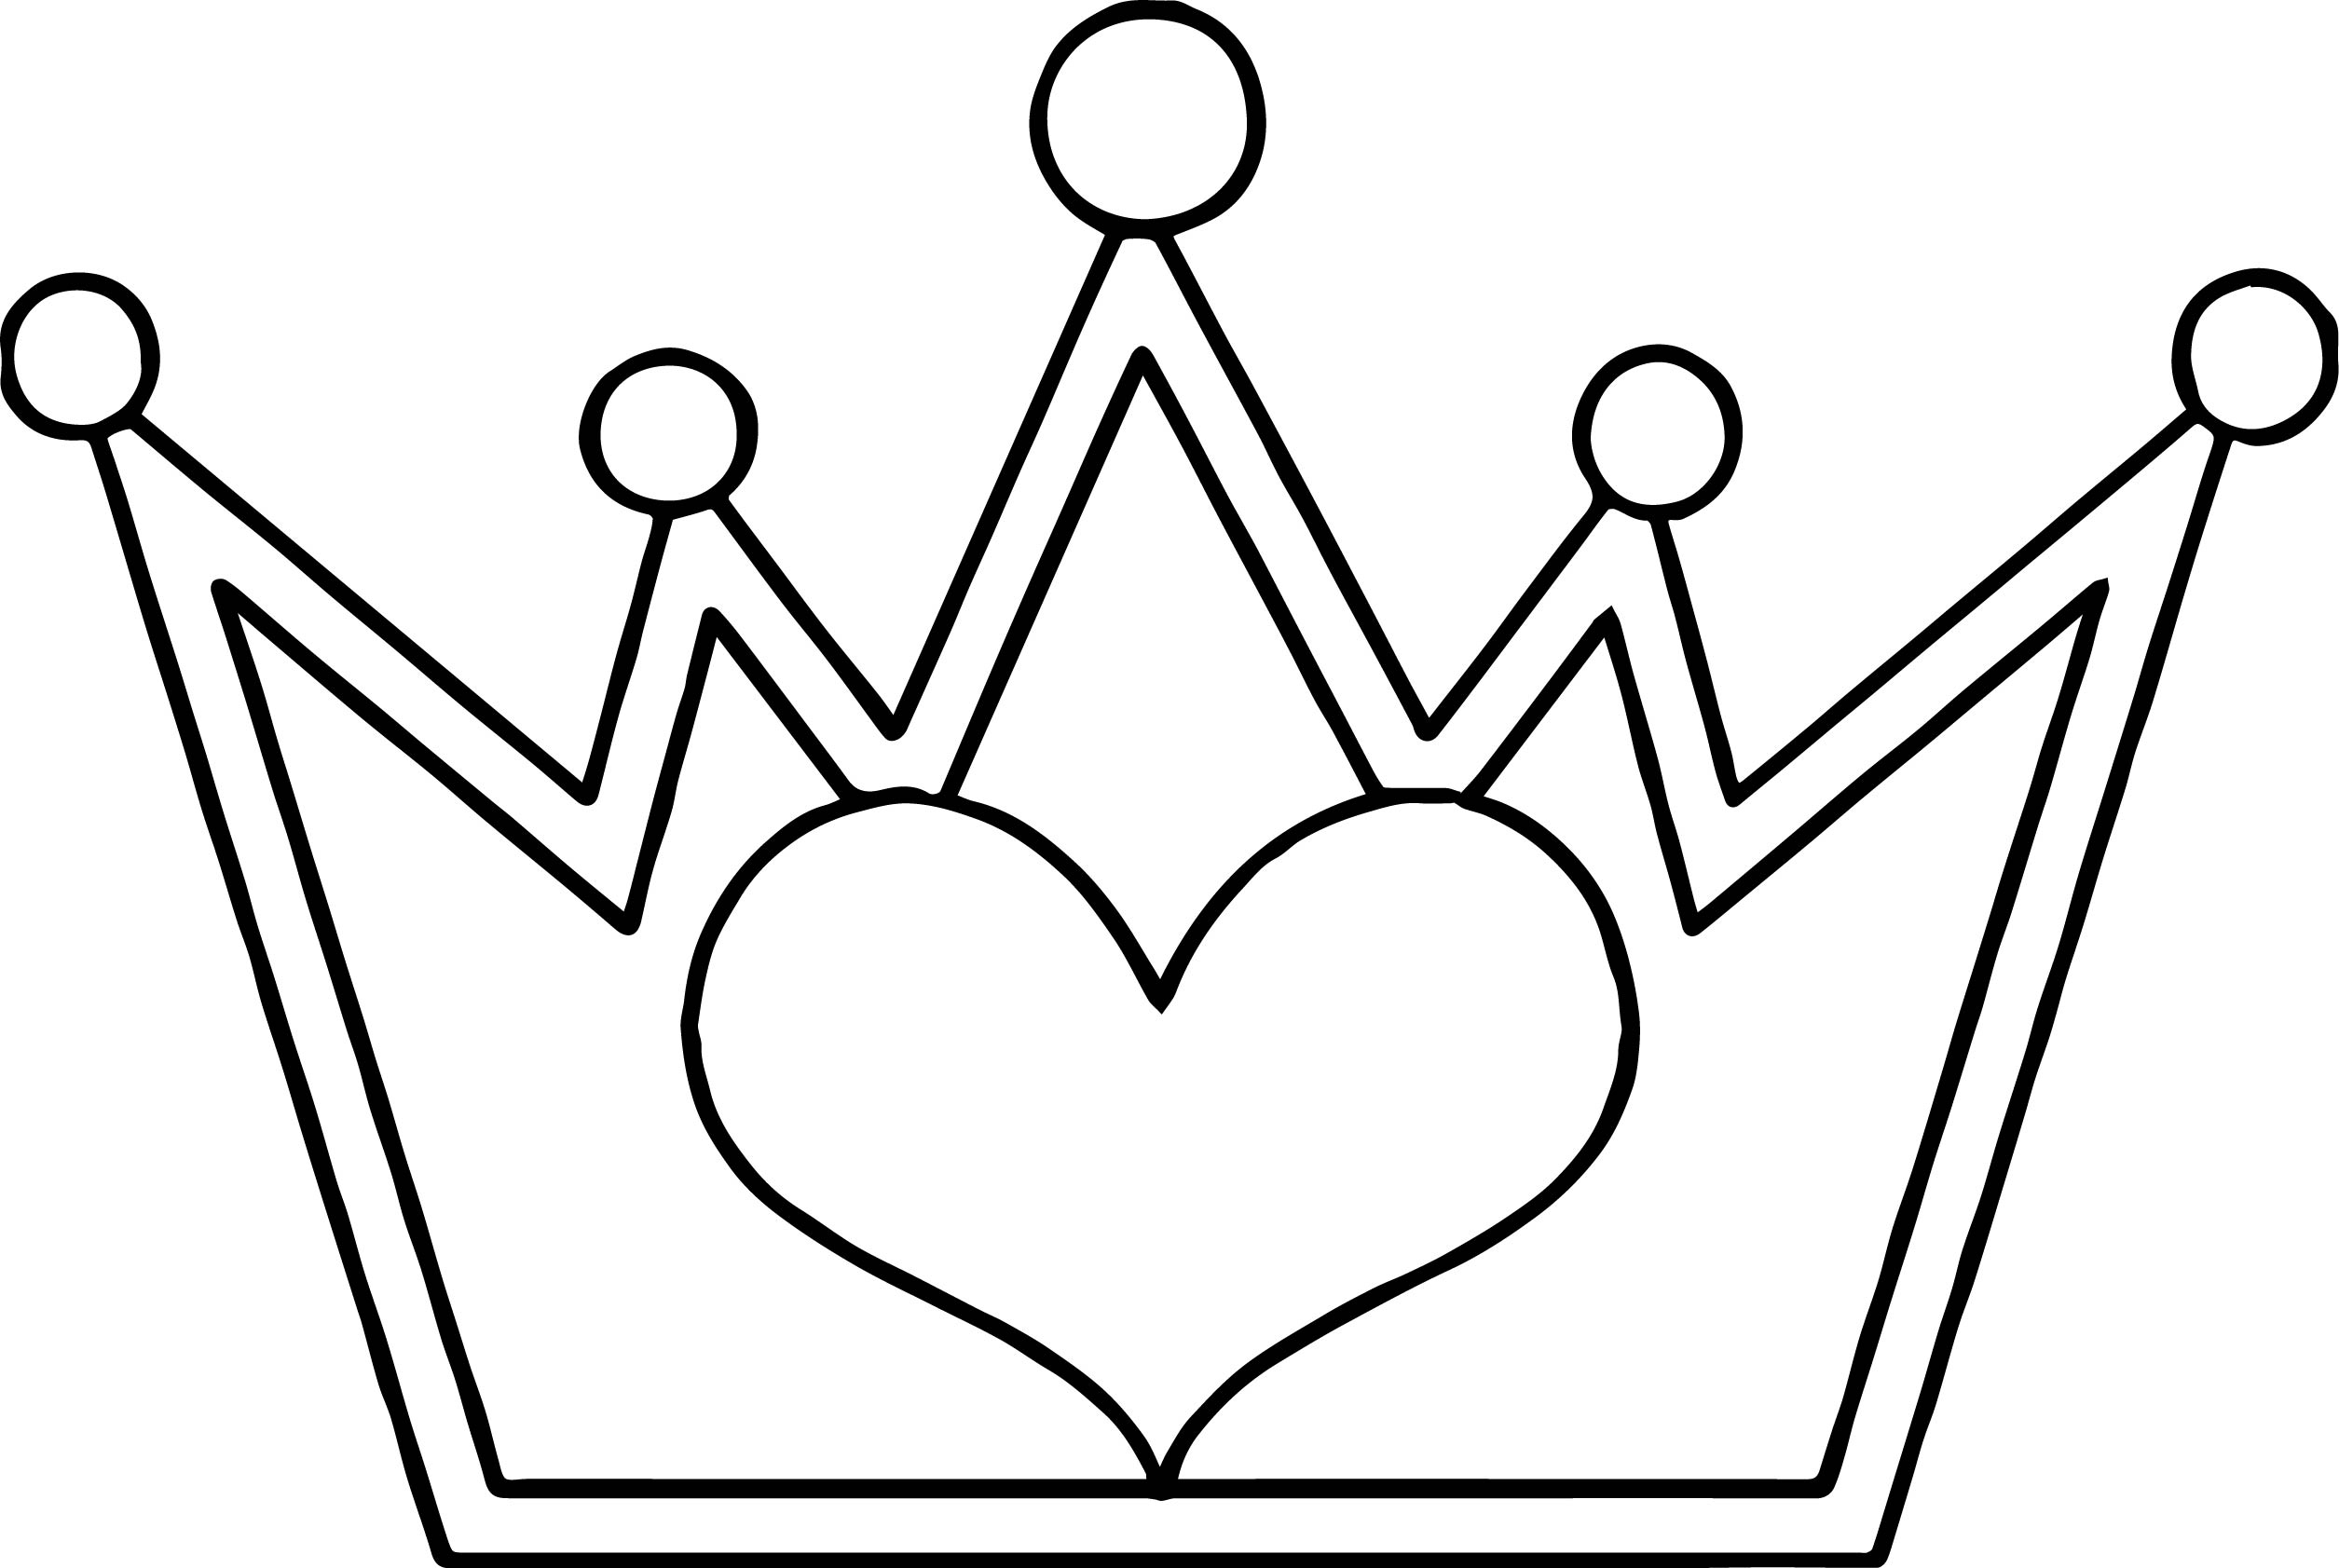 Crown Coloring Page - Princess Tiara Coloring Pages Coloring Home